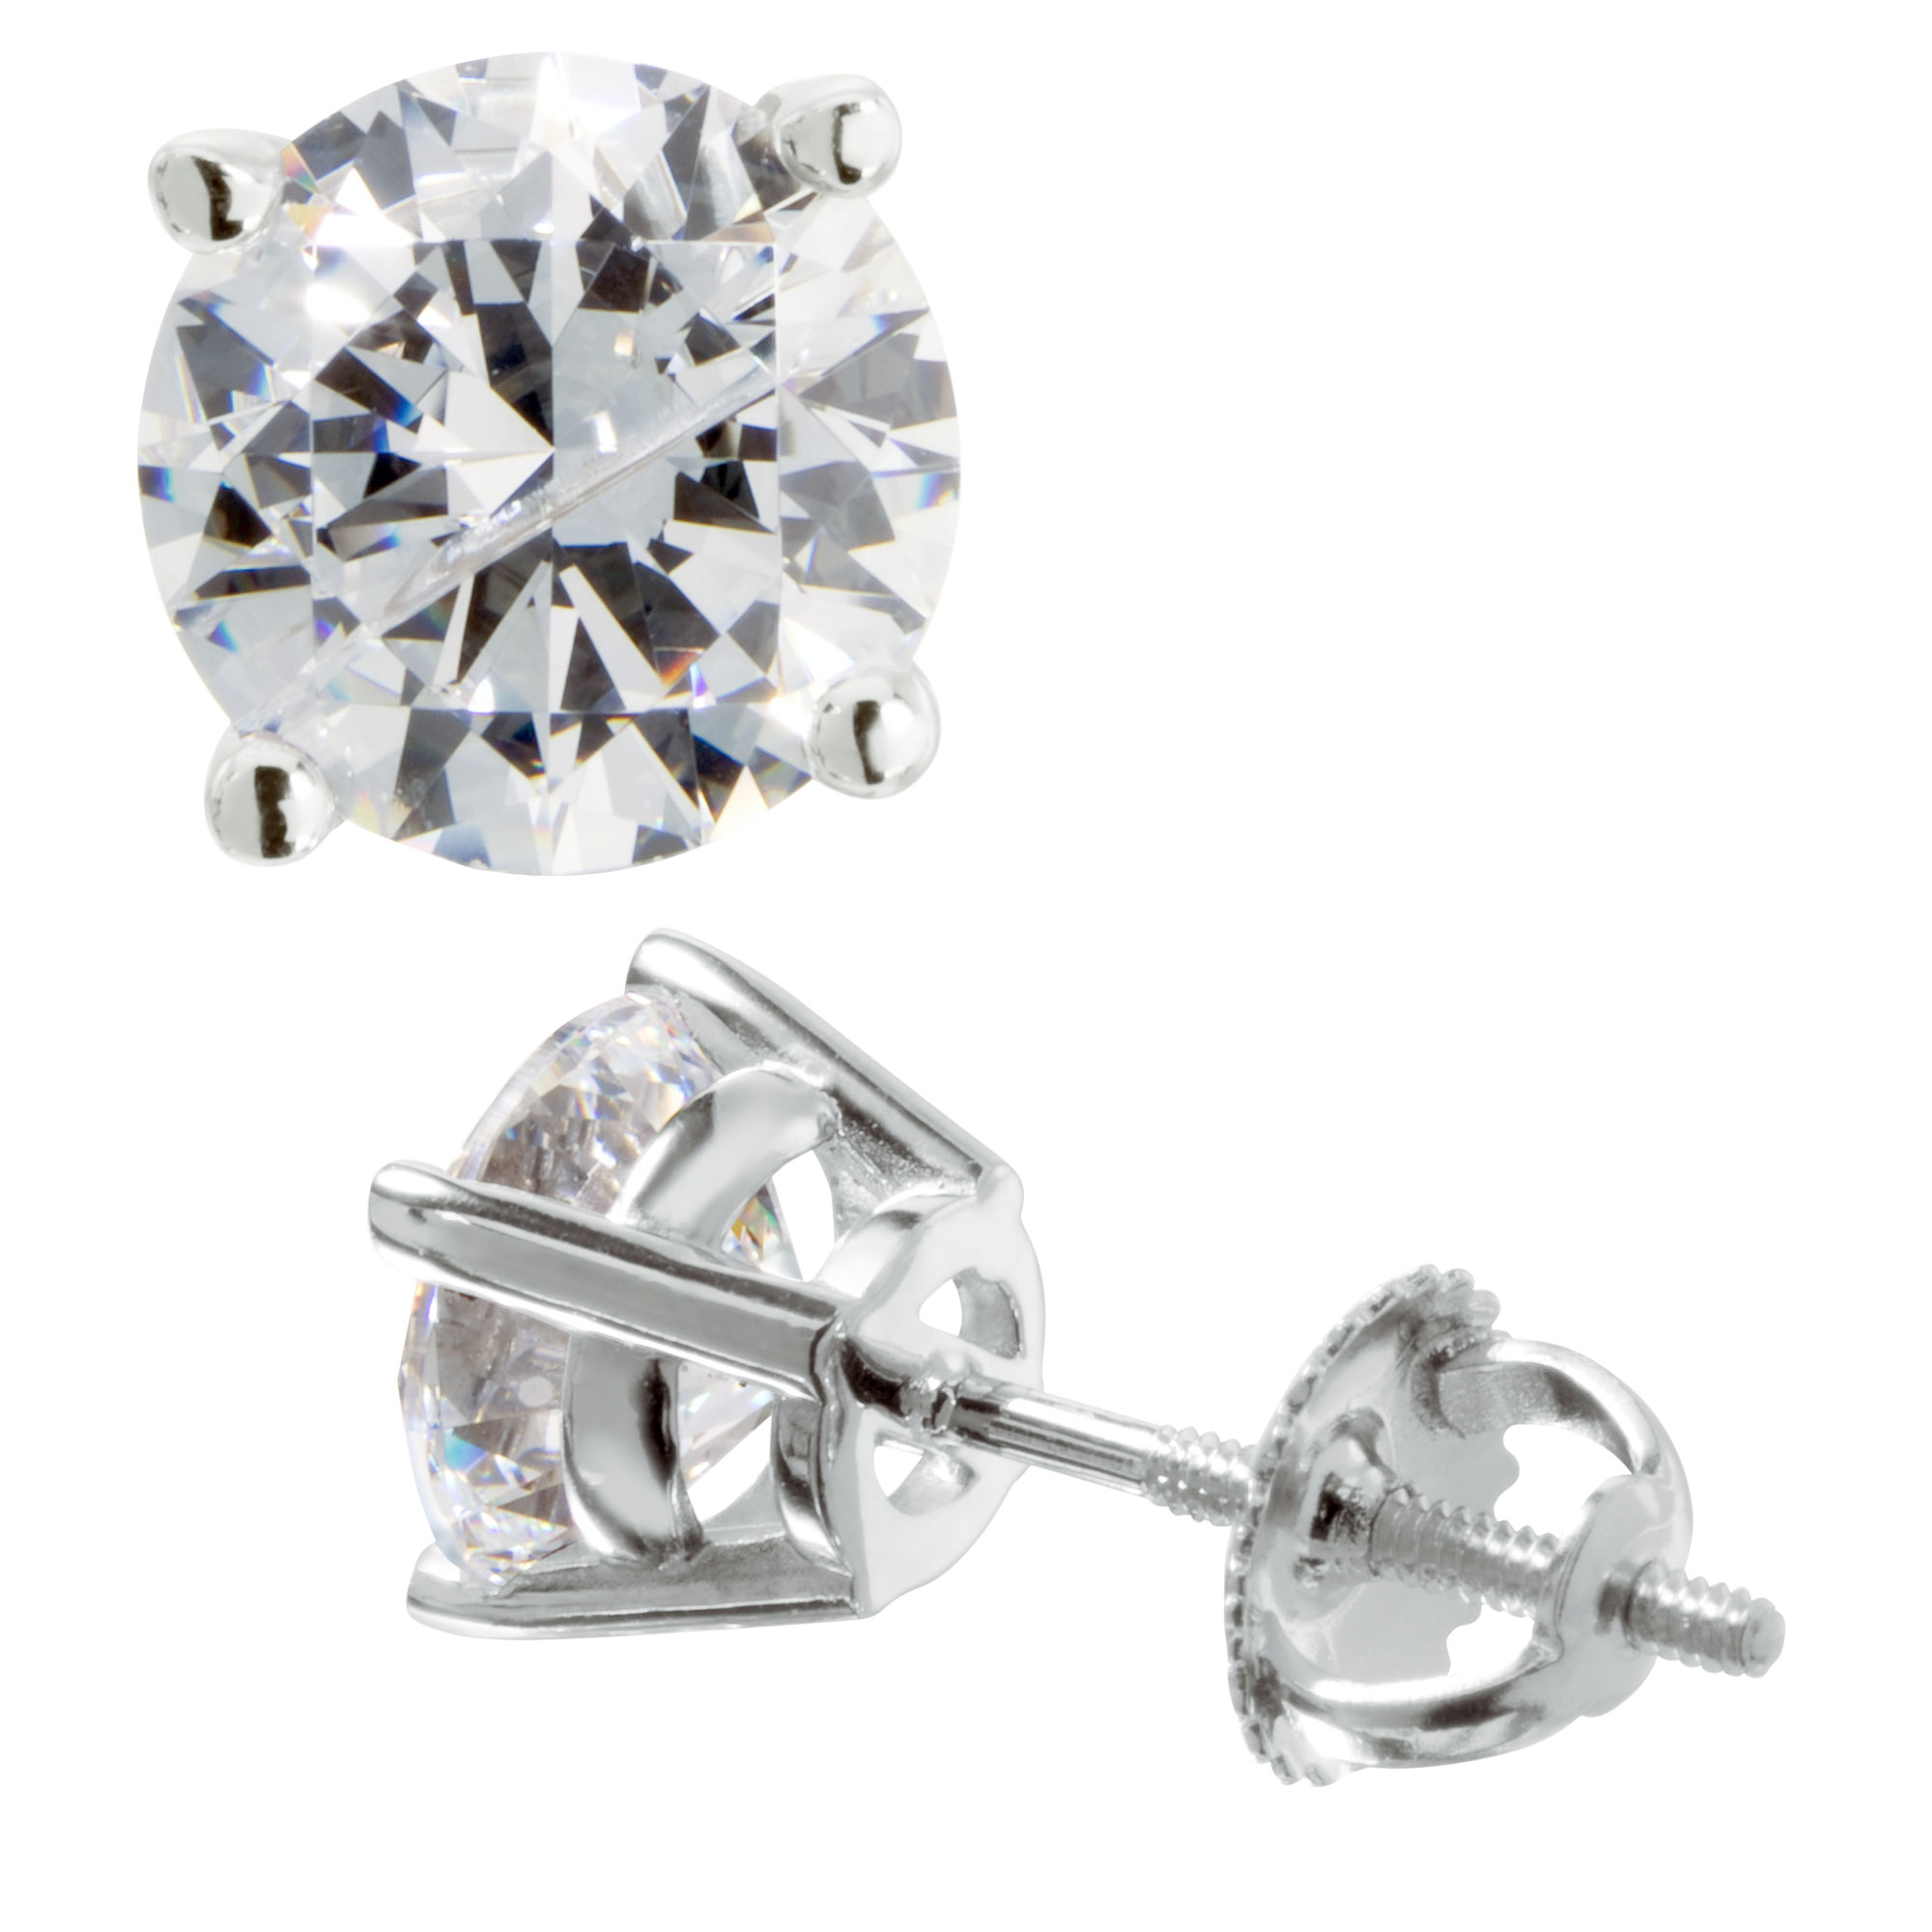 Round Cut Studs, Screw Back, Basket Set $ 105.00